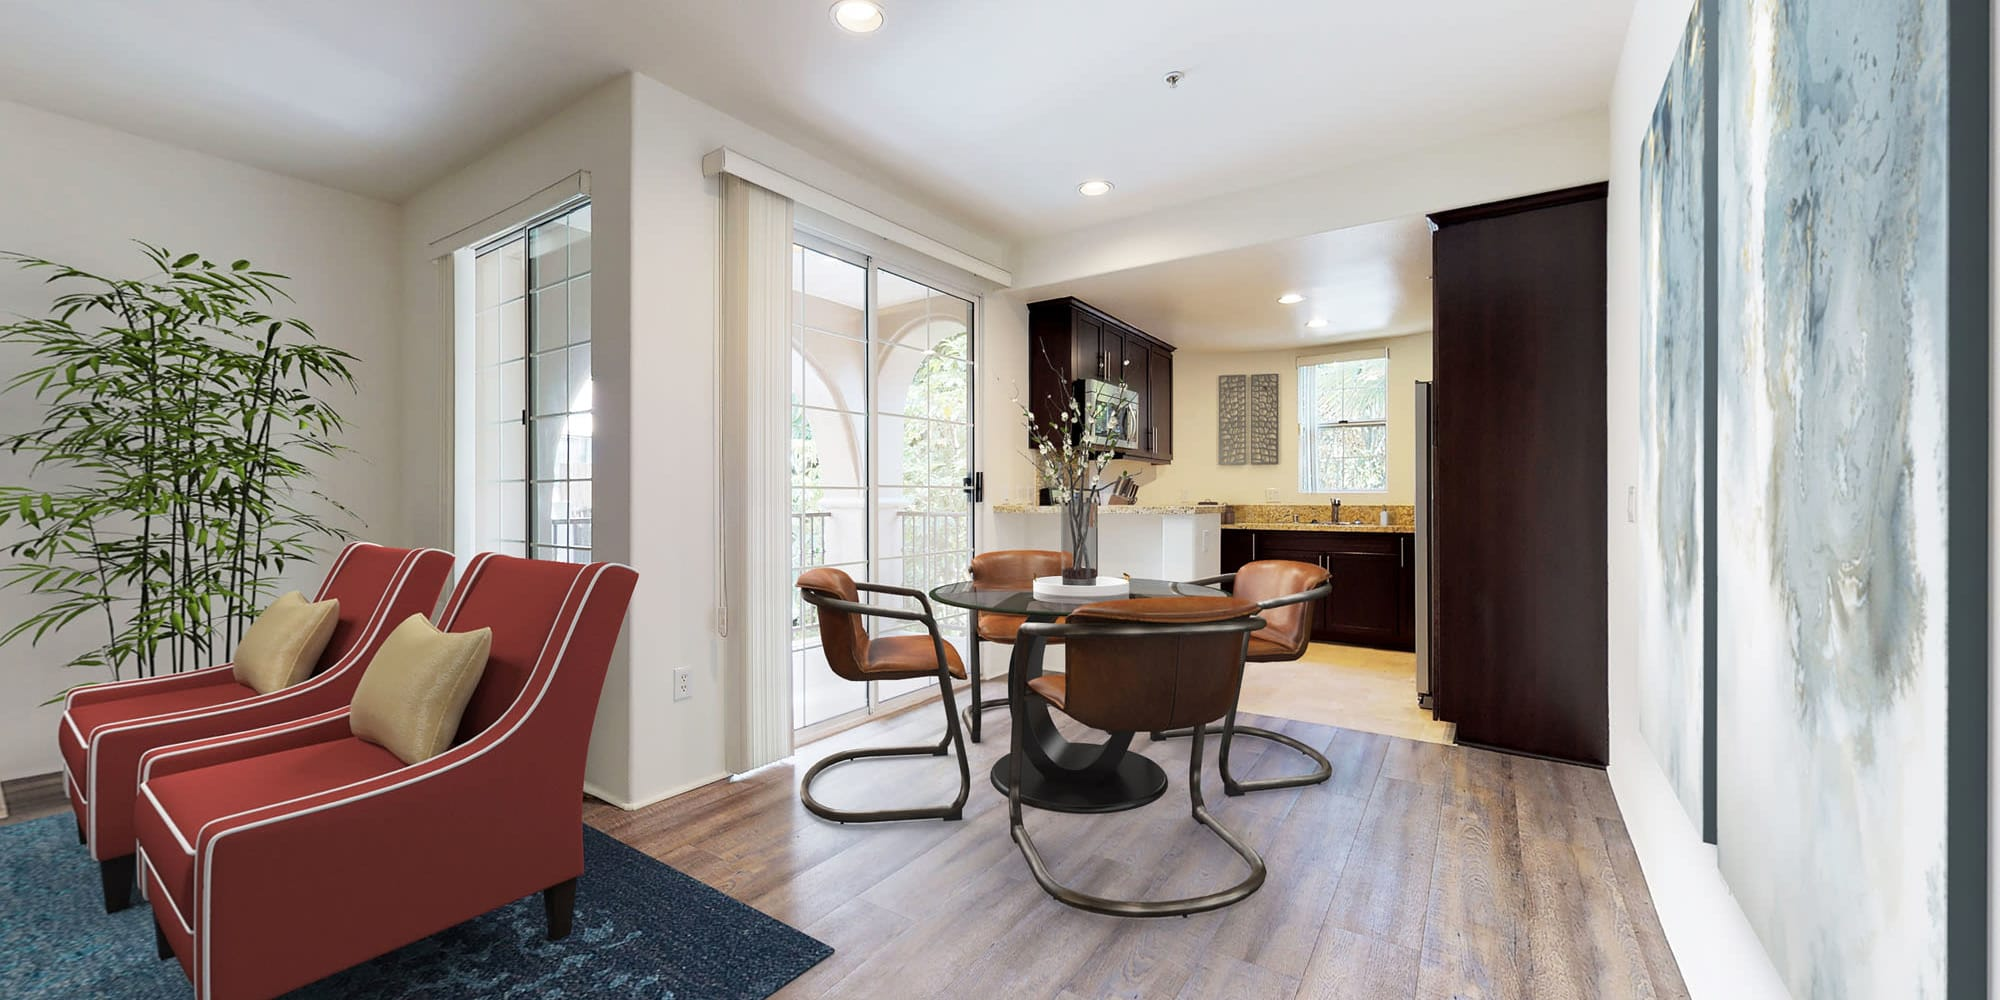 Hardwood flooring throughout the living space of a model home at L'Estancia in Studio City, California